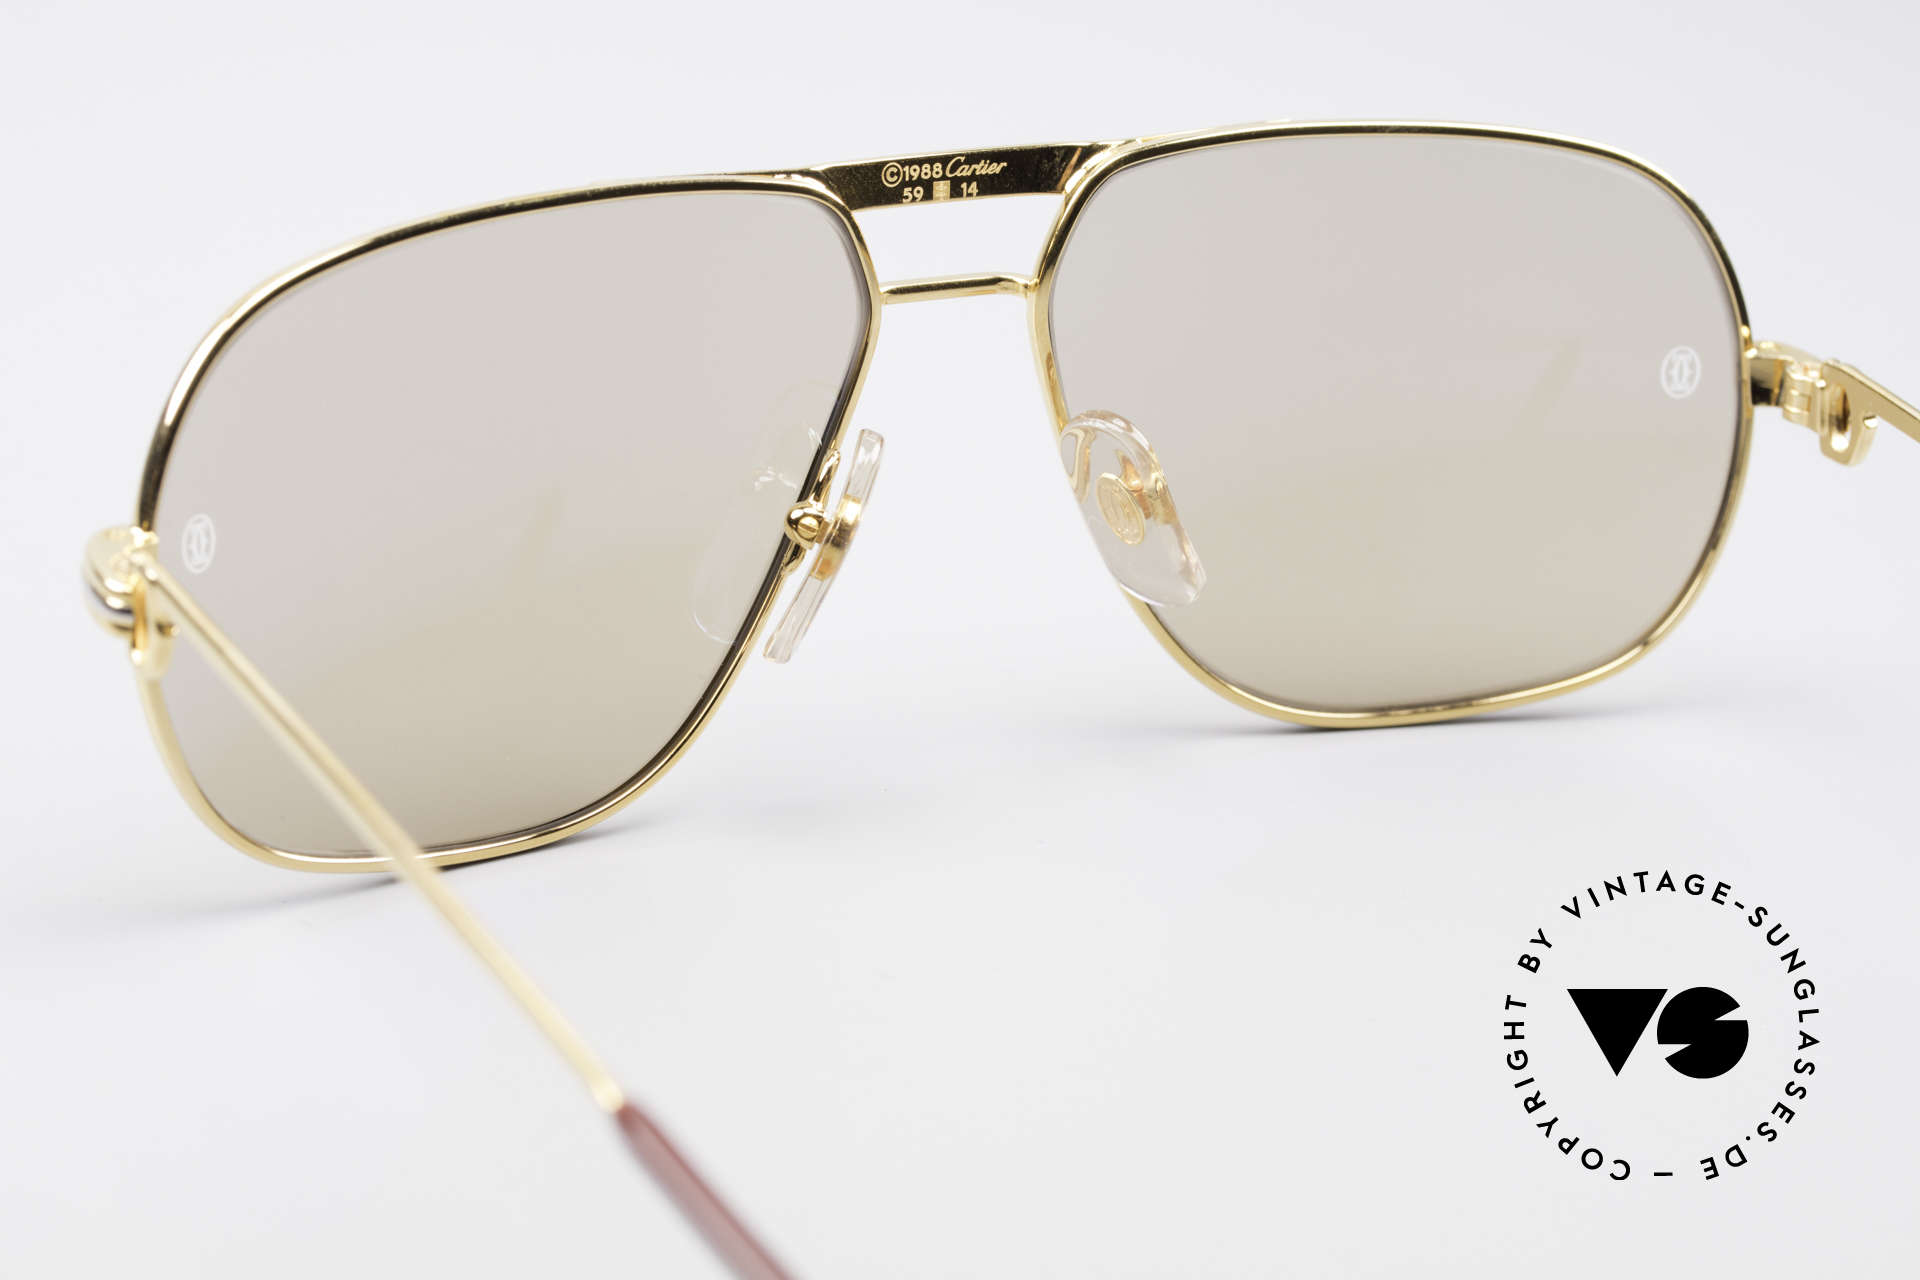 Cartier Tank - M Luxury Designer Sunglasses, 22ct gold-plated frame (like all vintage Cartier originals), Made for Men